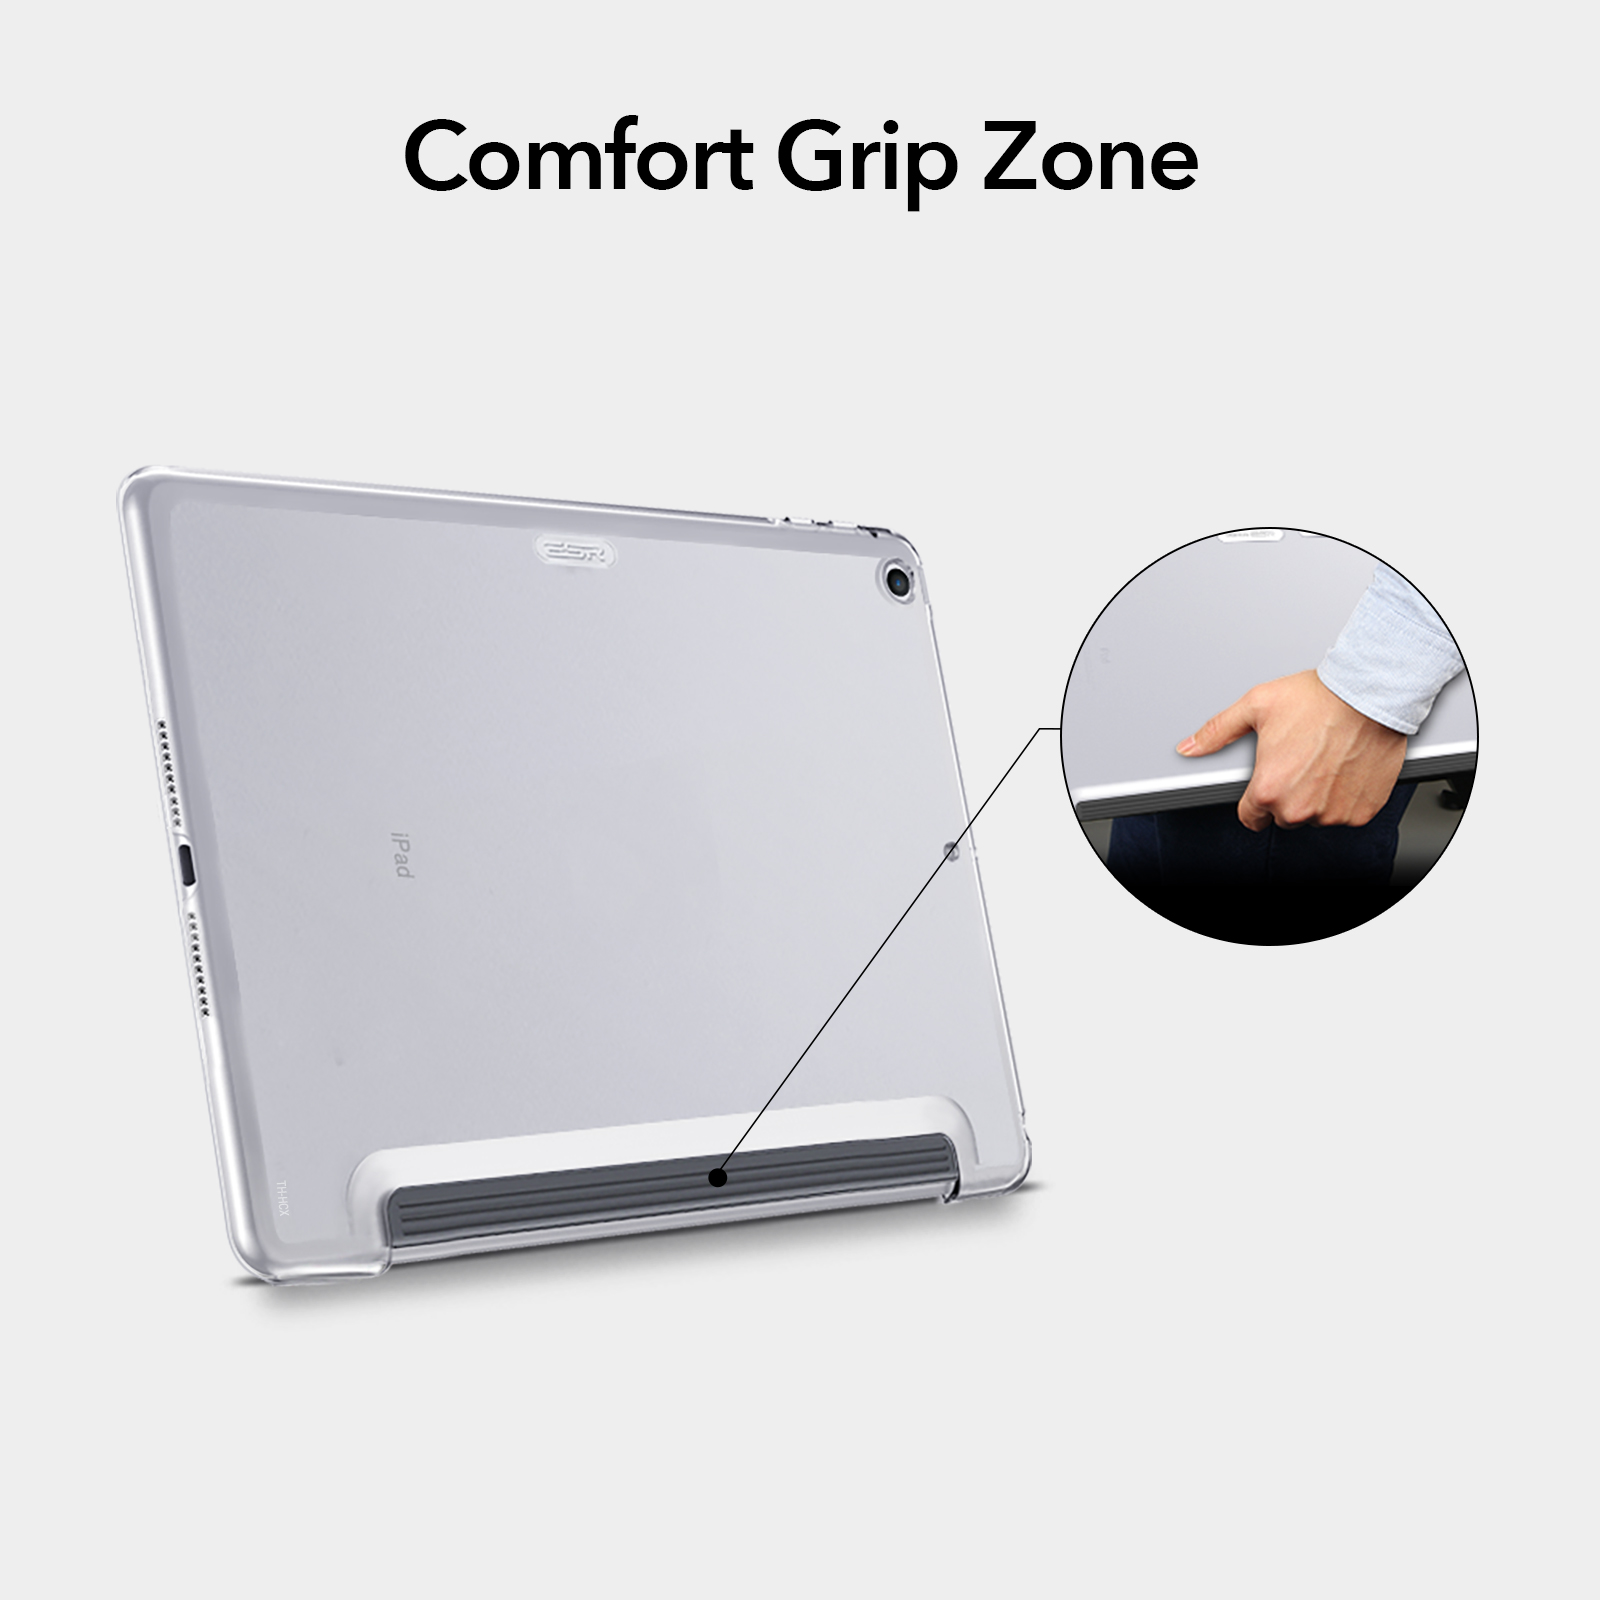 Crystal Clear hard back case with comfort grip zone for iPad Pro